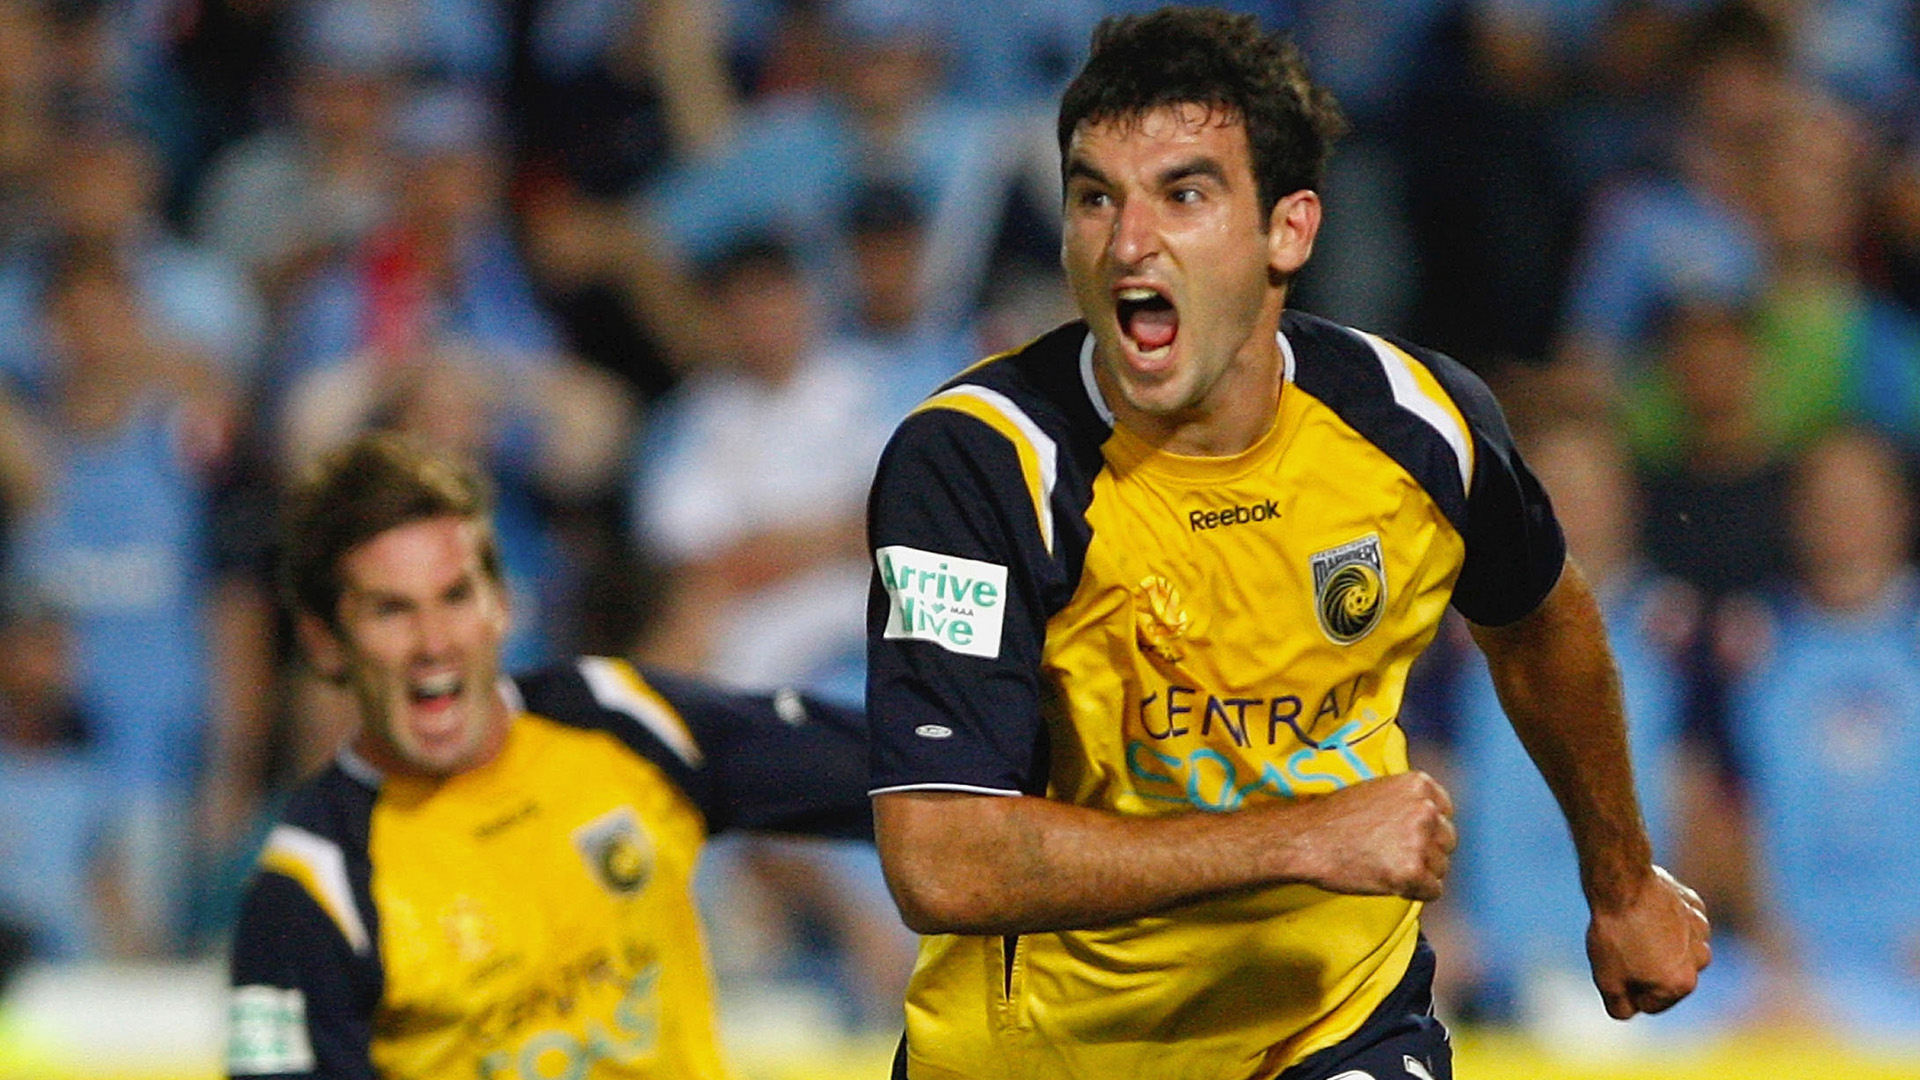 Jedinak mariners